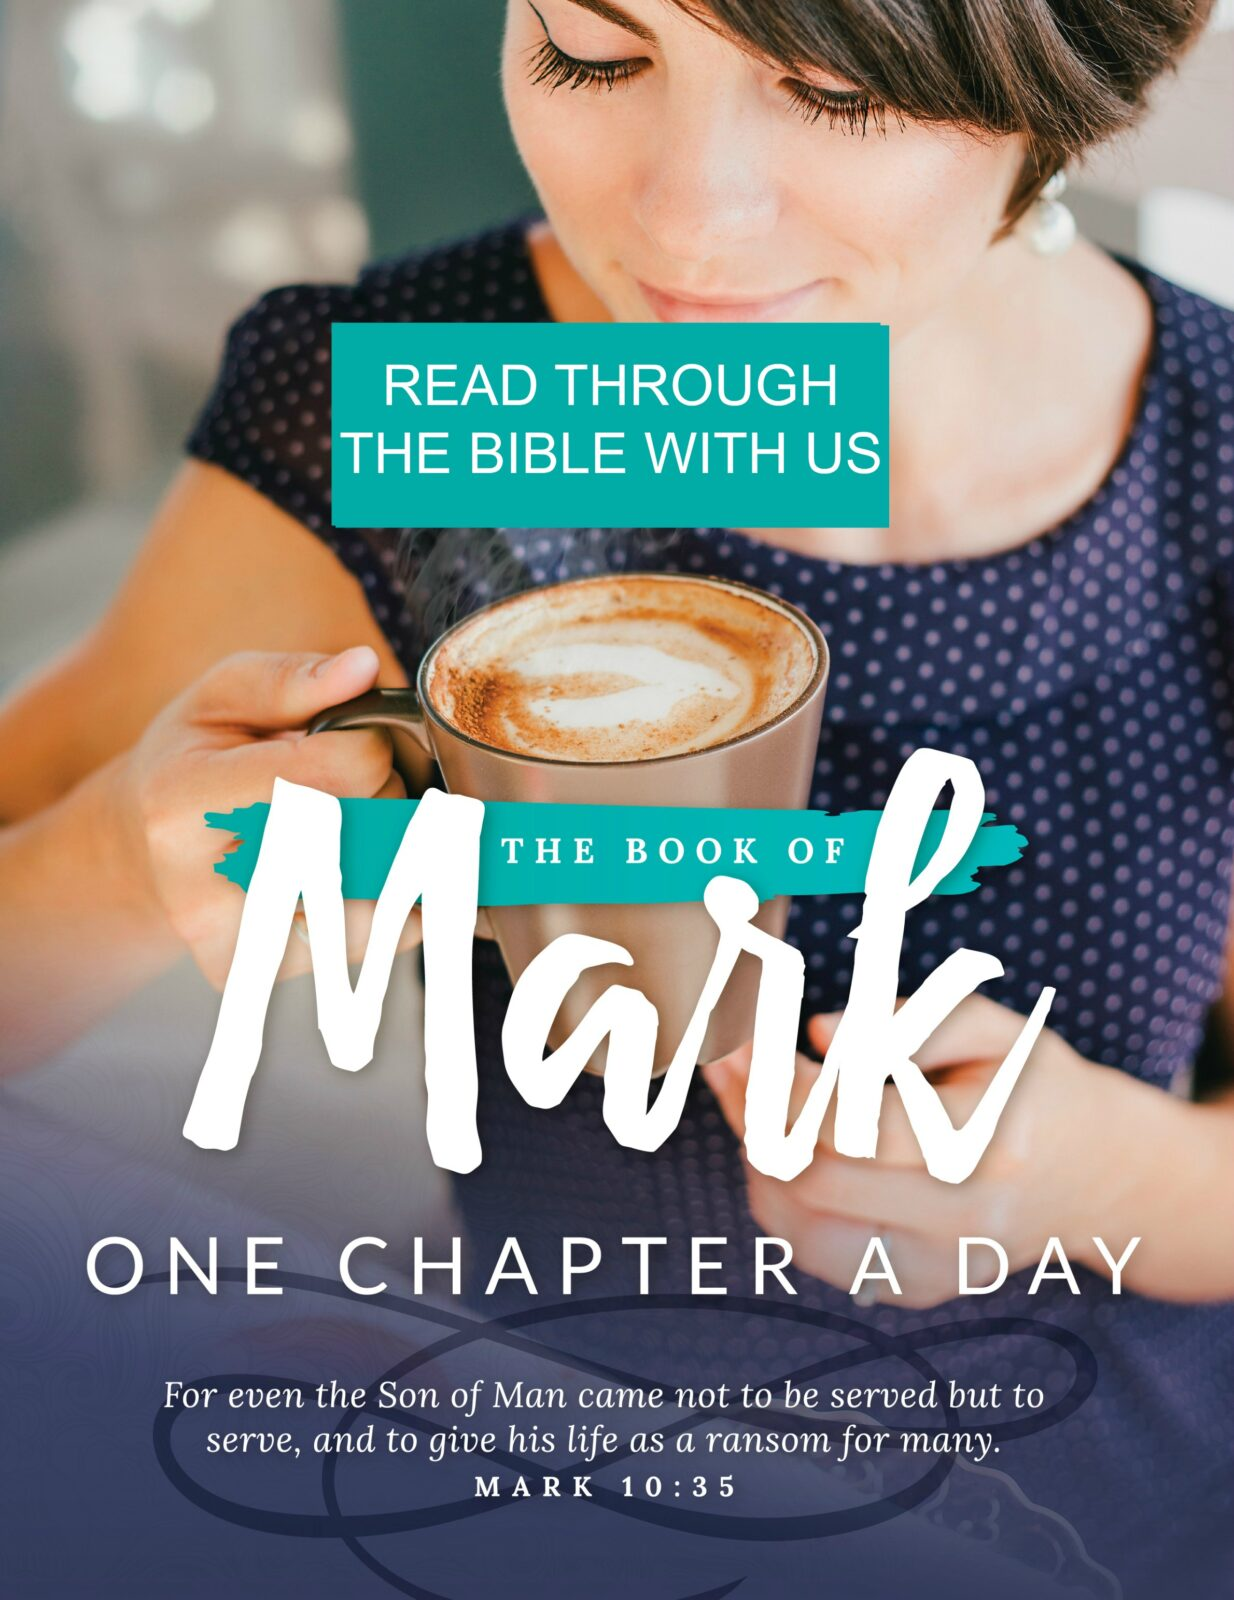 Study the book of Mark with this free online Bible study from Good Morning Girls' and find all of the graphics, blog posts and videos right here! #Biblestudy #Mark #WomensBibleStudy #GoodMorningGirls